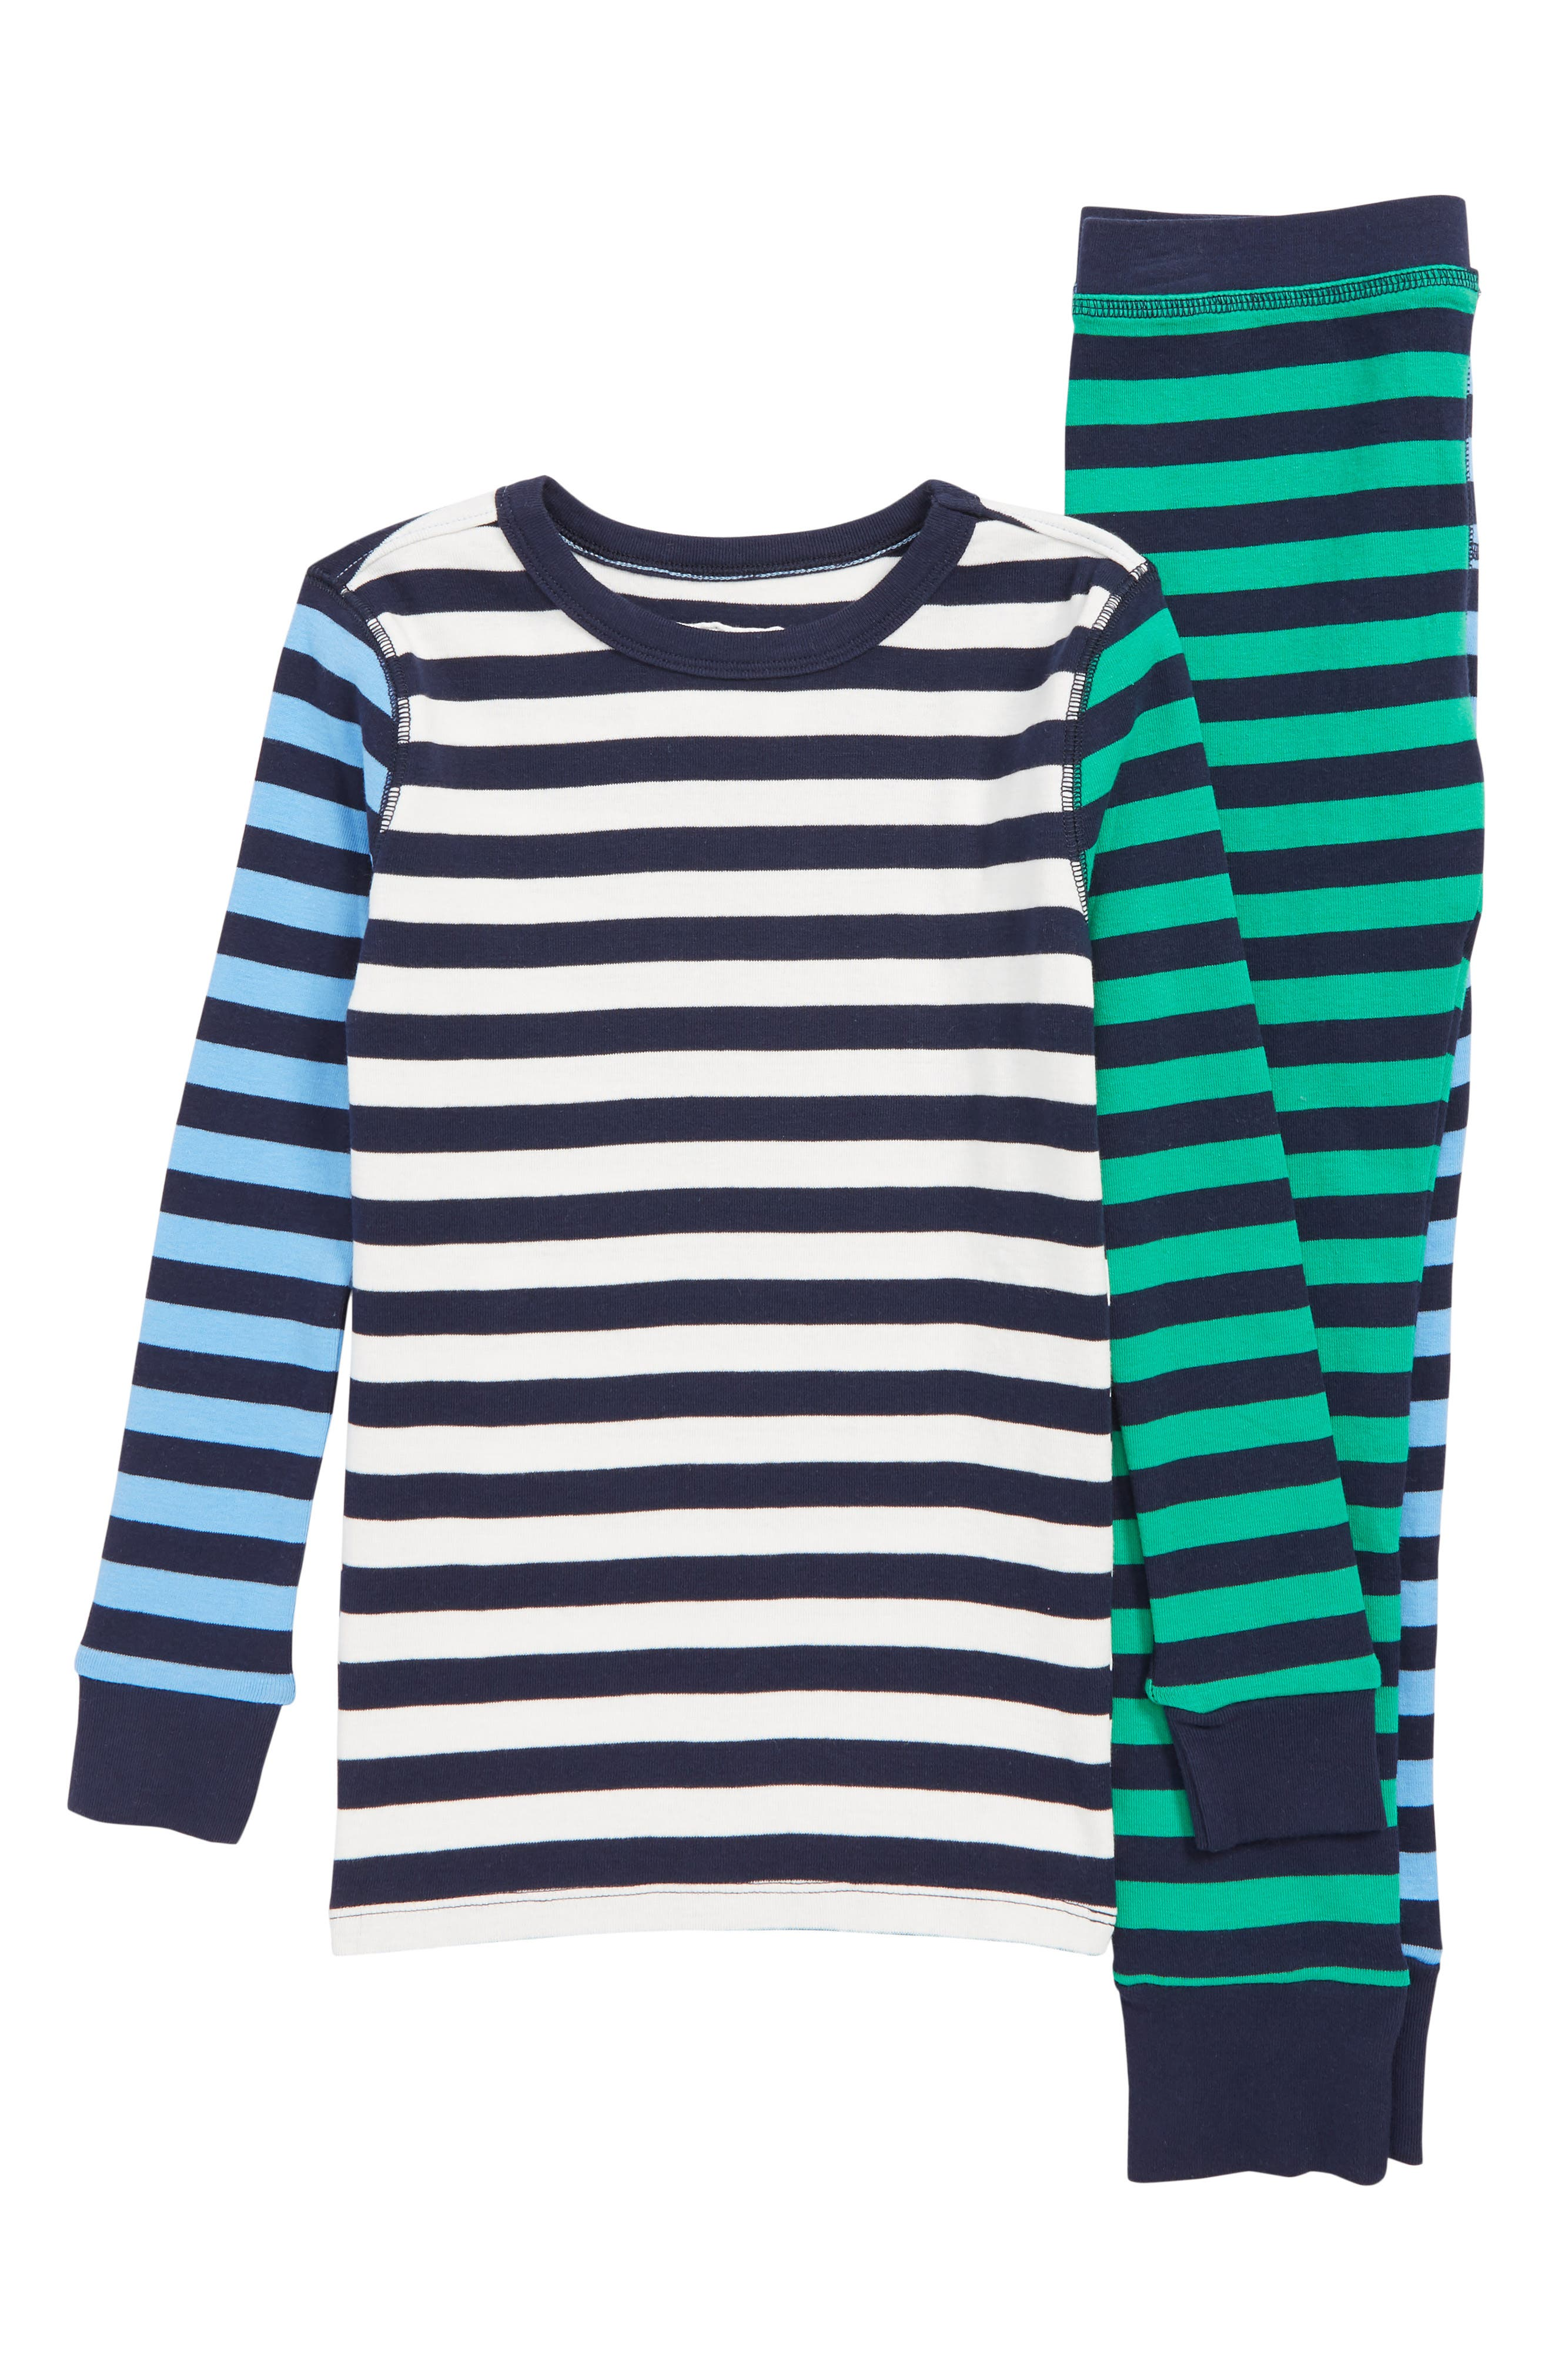 Toddler Boys Crewcuts By Jcrew Stripe Fitted TwoPiece Pajamas Size 3T  None